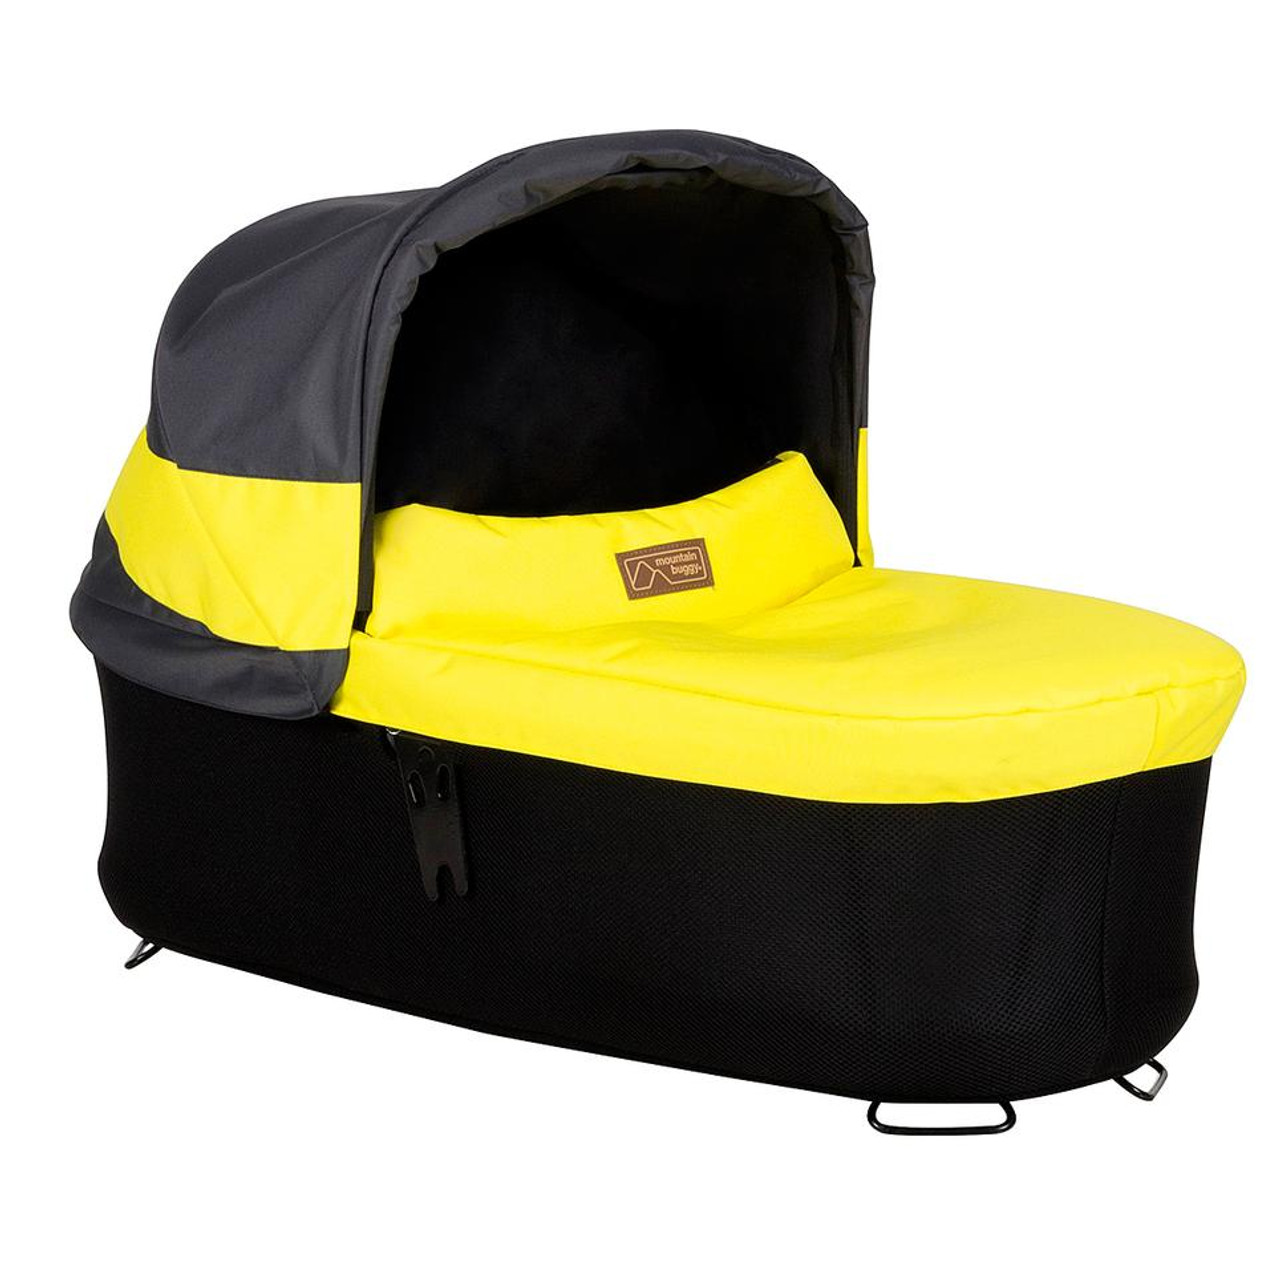 Mountain Buggy Carrycot Plus for Urban Jungle / Terrain and +one - Solus